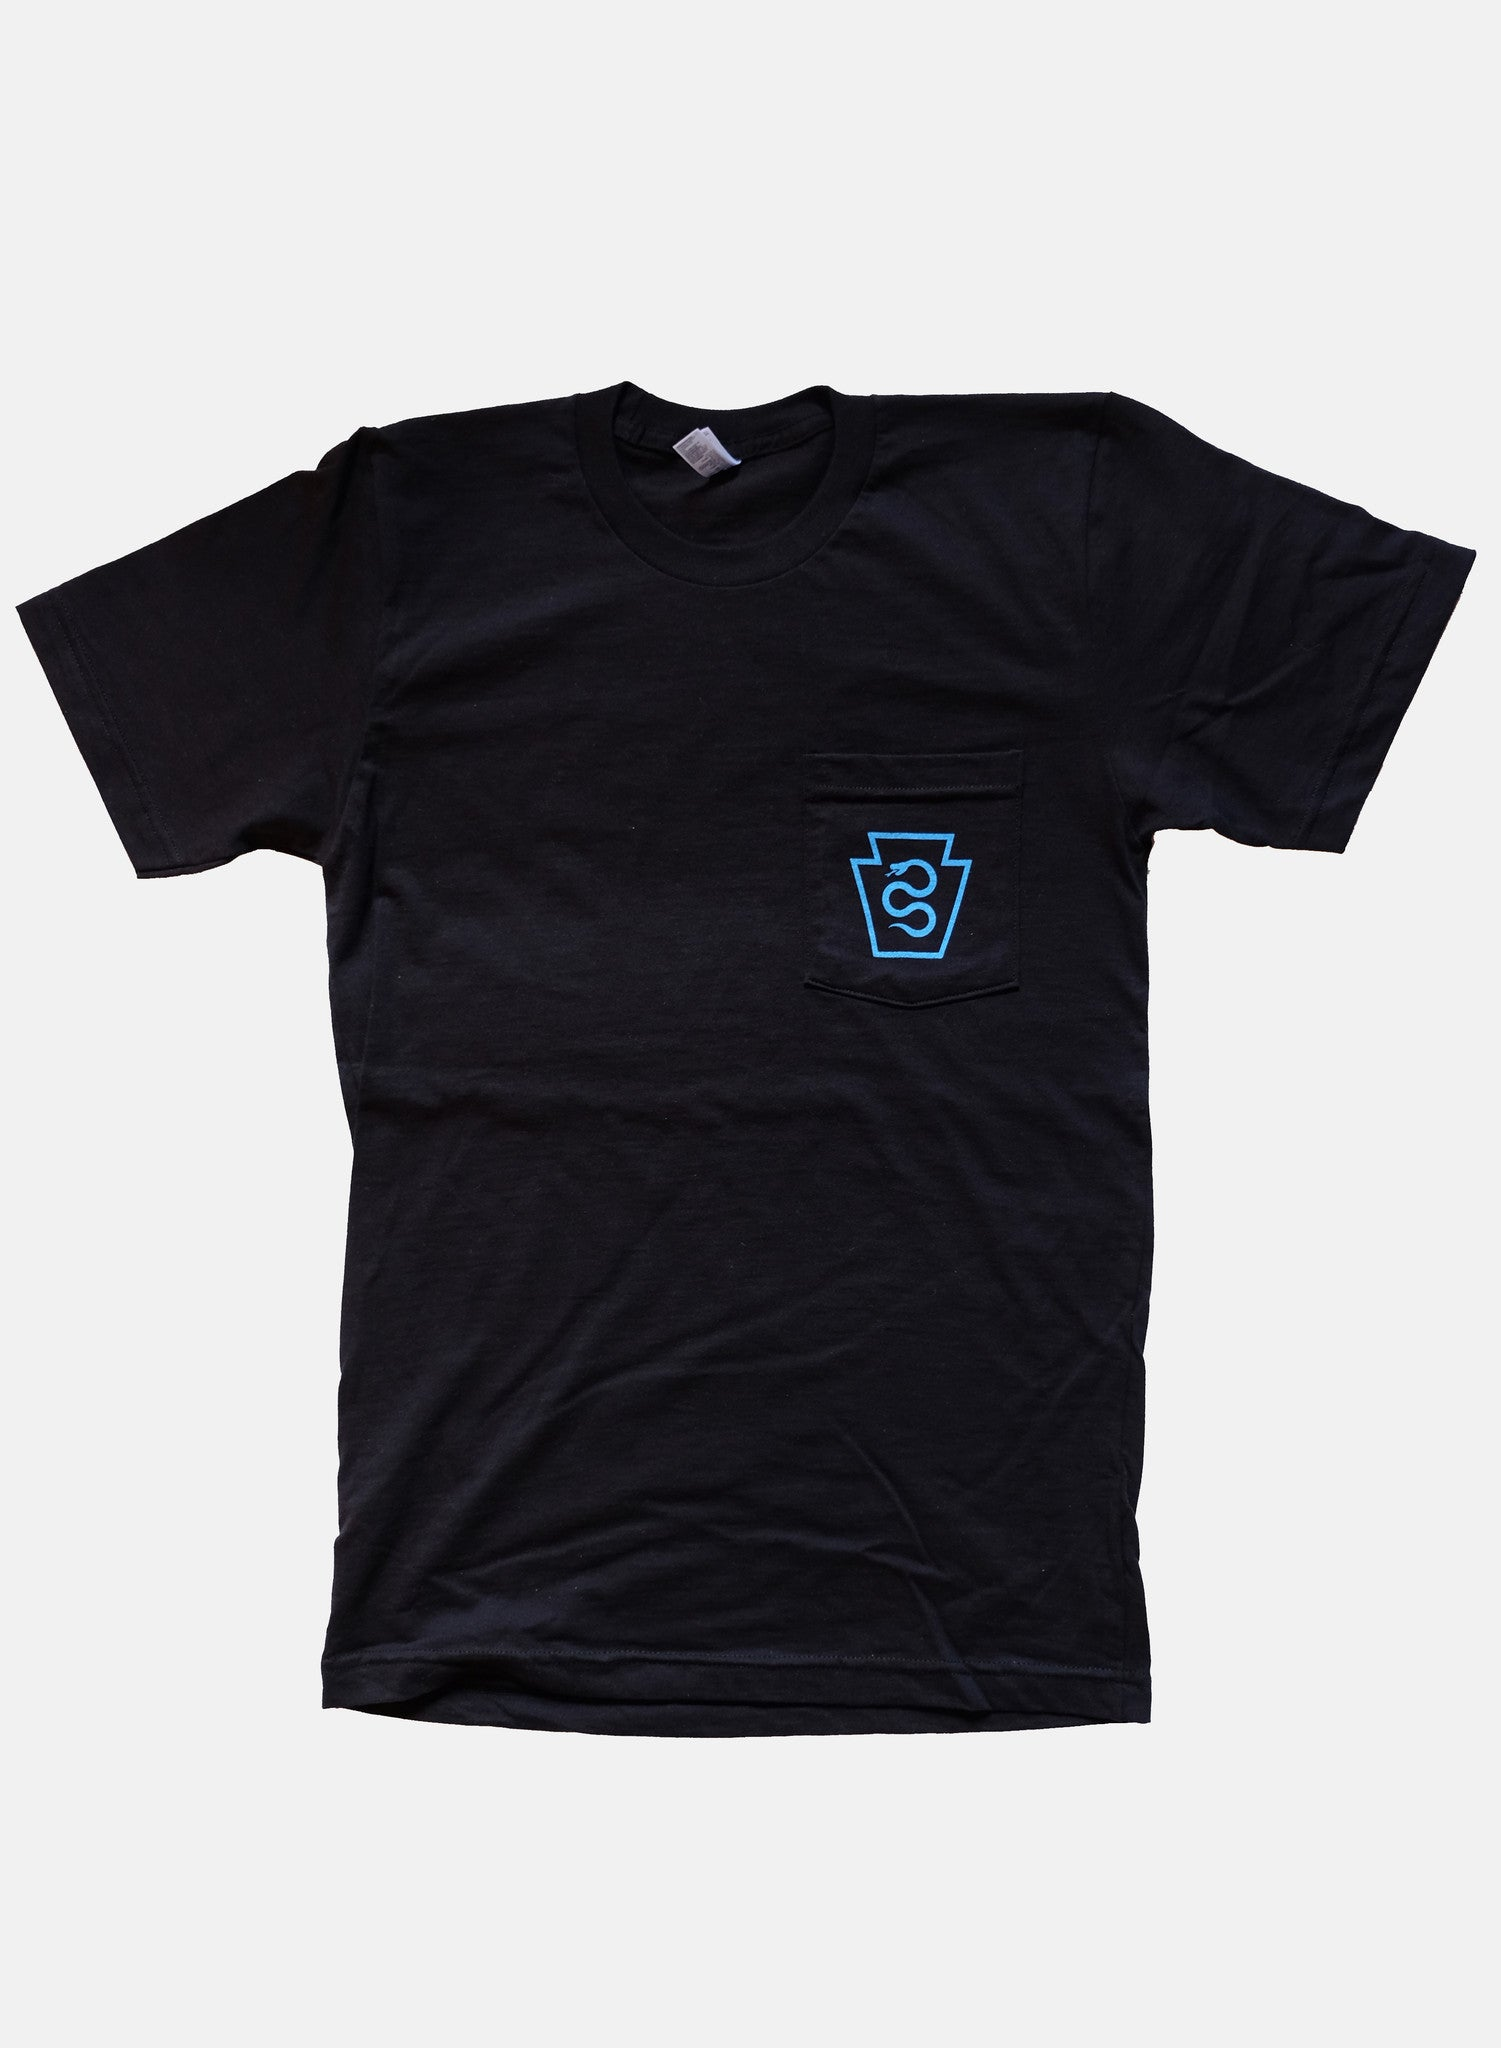 Standard Shirt Black and Blue